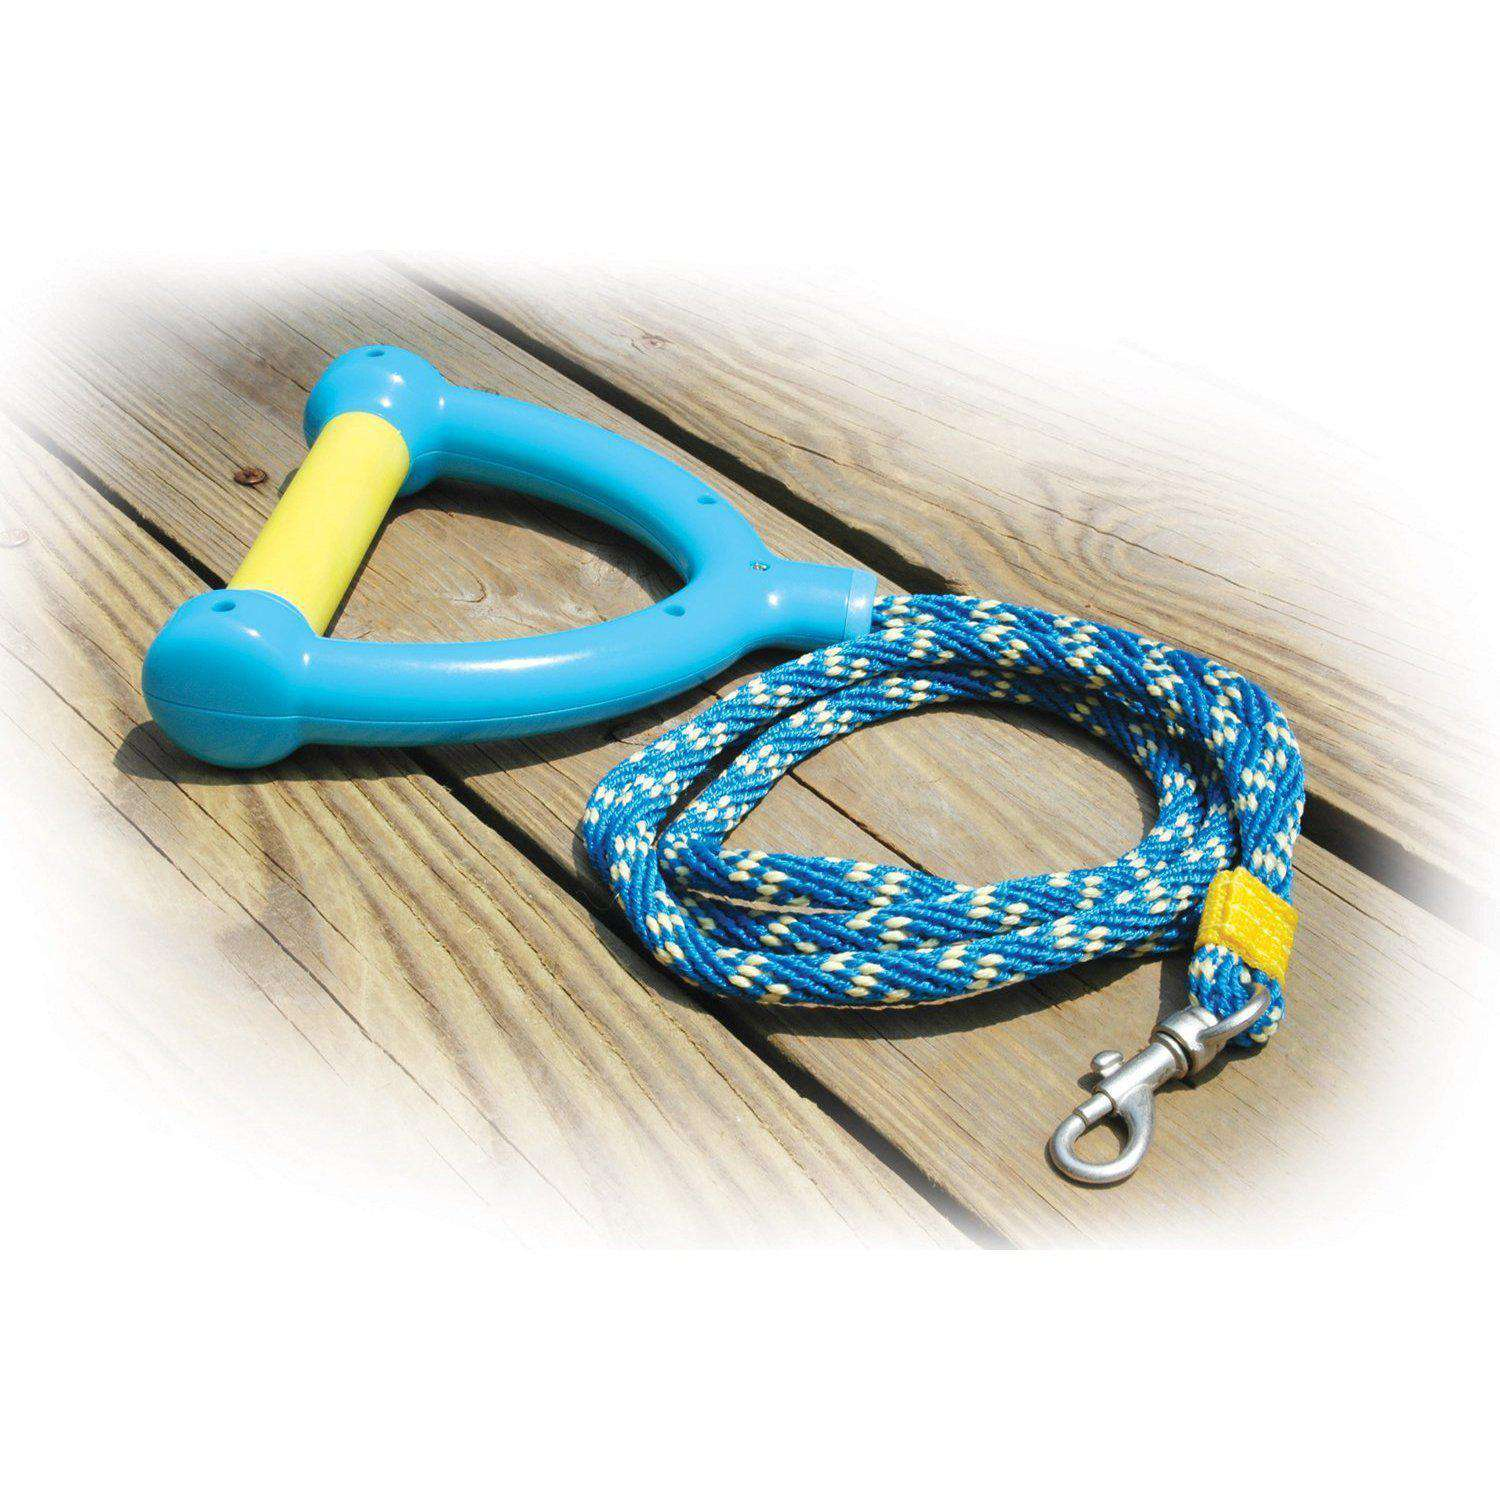 Paws Aboard Active Dog Water Ski Rope Leash - Blue - Yellow-Paws Aboard-DirtyFurClothing